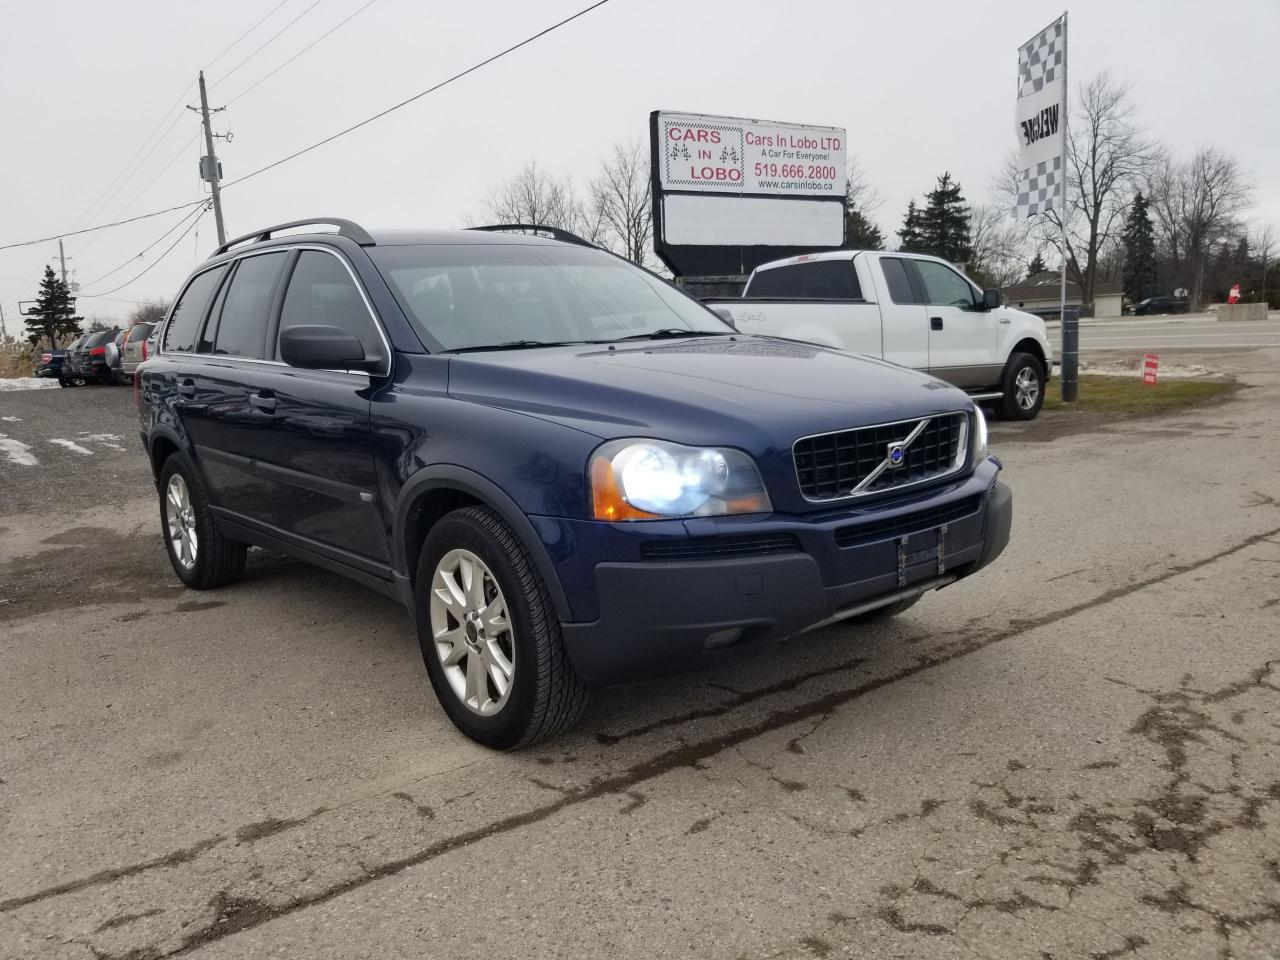 estrie sale detail volvo jn auto used page automatique vehicle in tout eng awd for quip sold